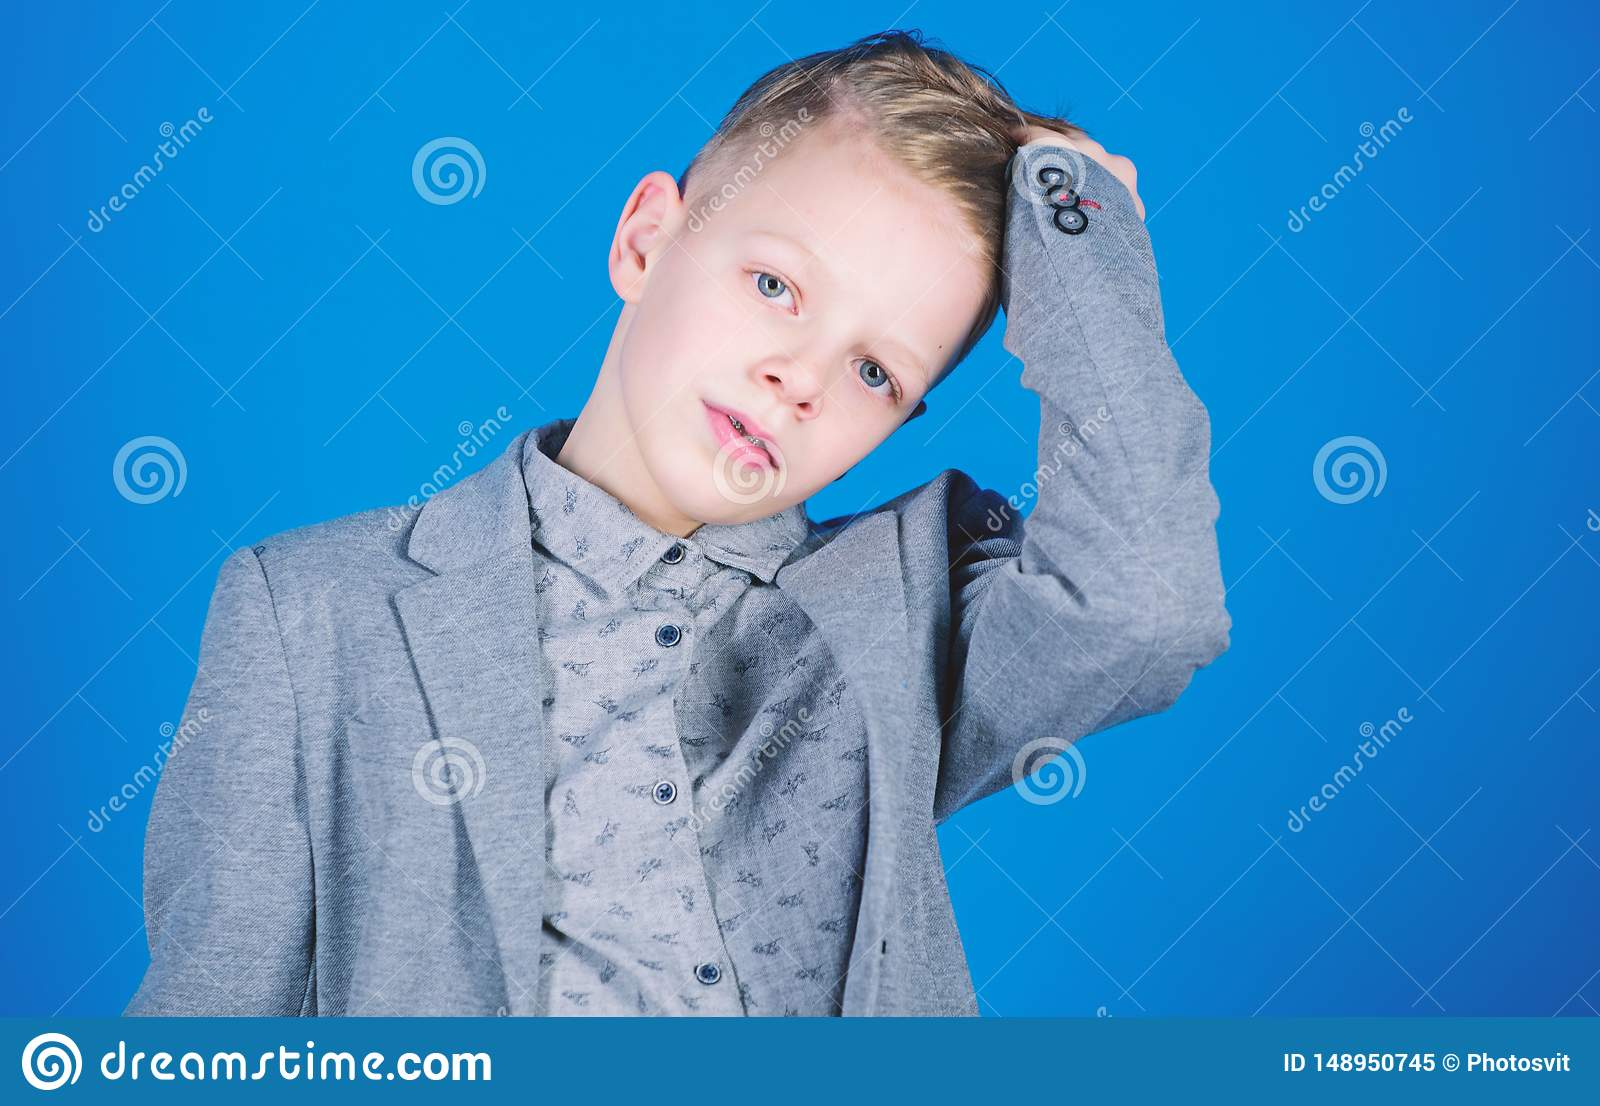 Boy Modern Hairstyle Wear Formal Style Suit Blue Background. Confident Guy Enjoy Fashionable ...